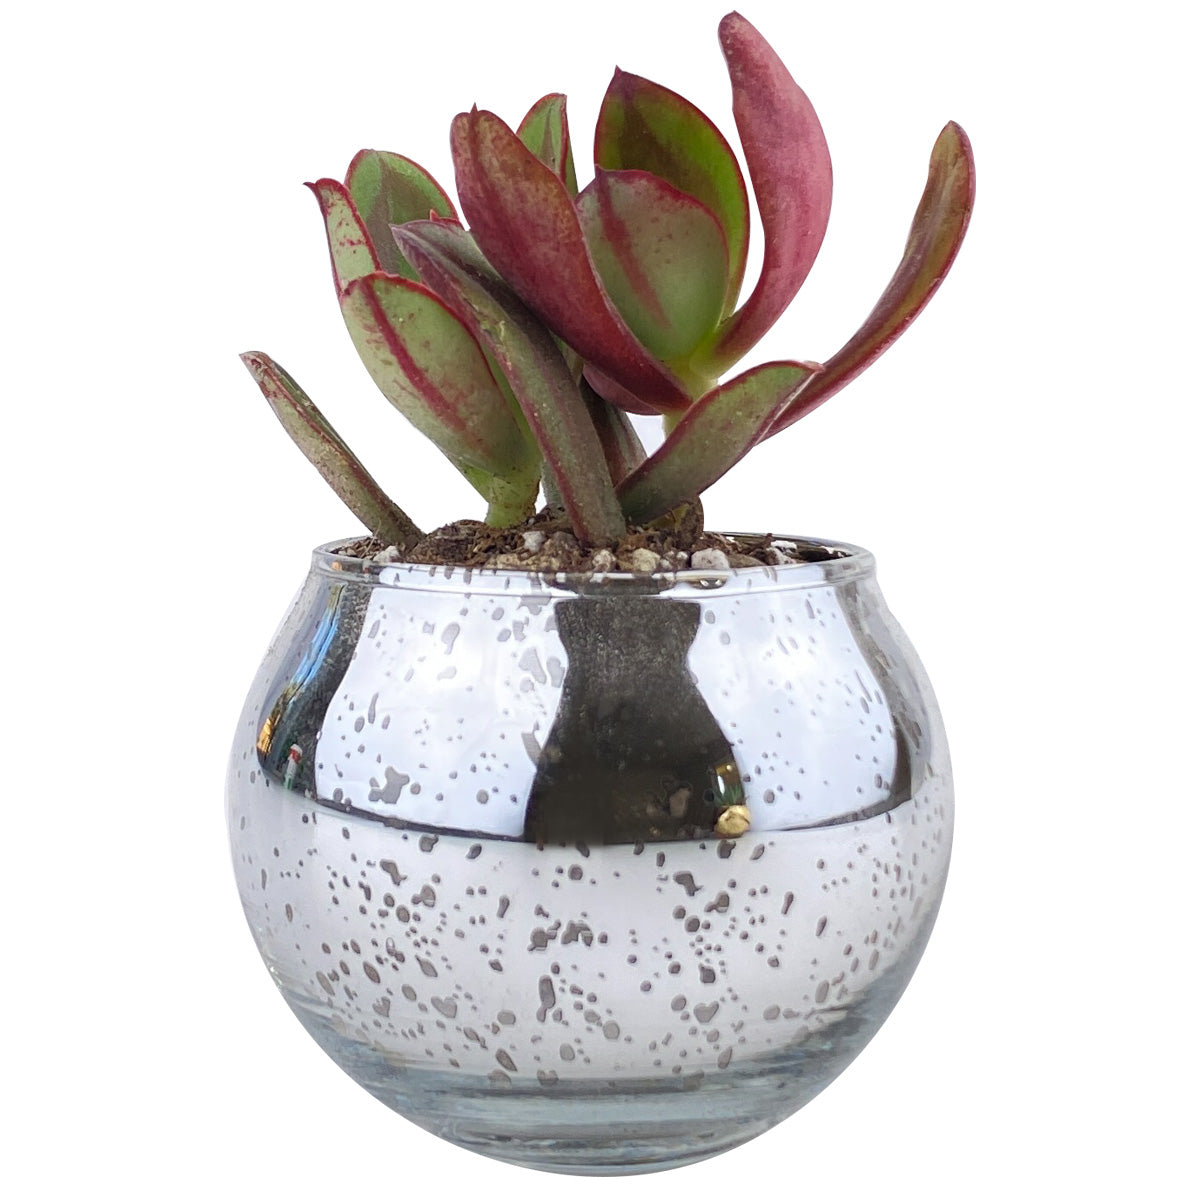 Pot for sale, Mini pot for succulent, Succulent pot decor ideas, Flower pot for sale, glass pots for planting, succulent gift for holiday, Round Silver Glitter Pot